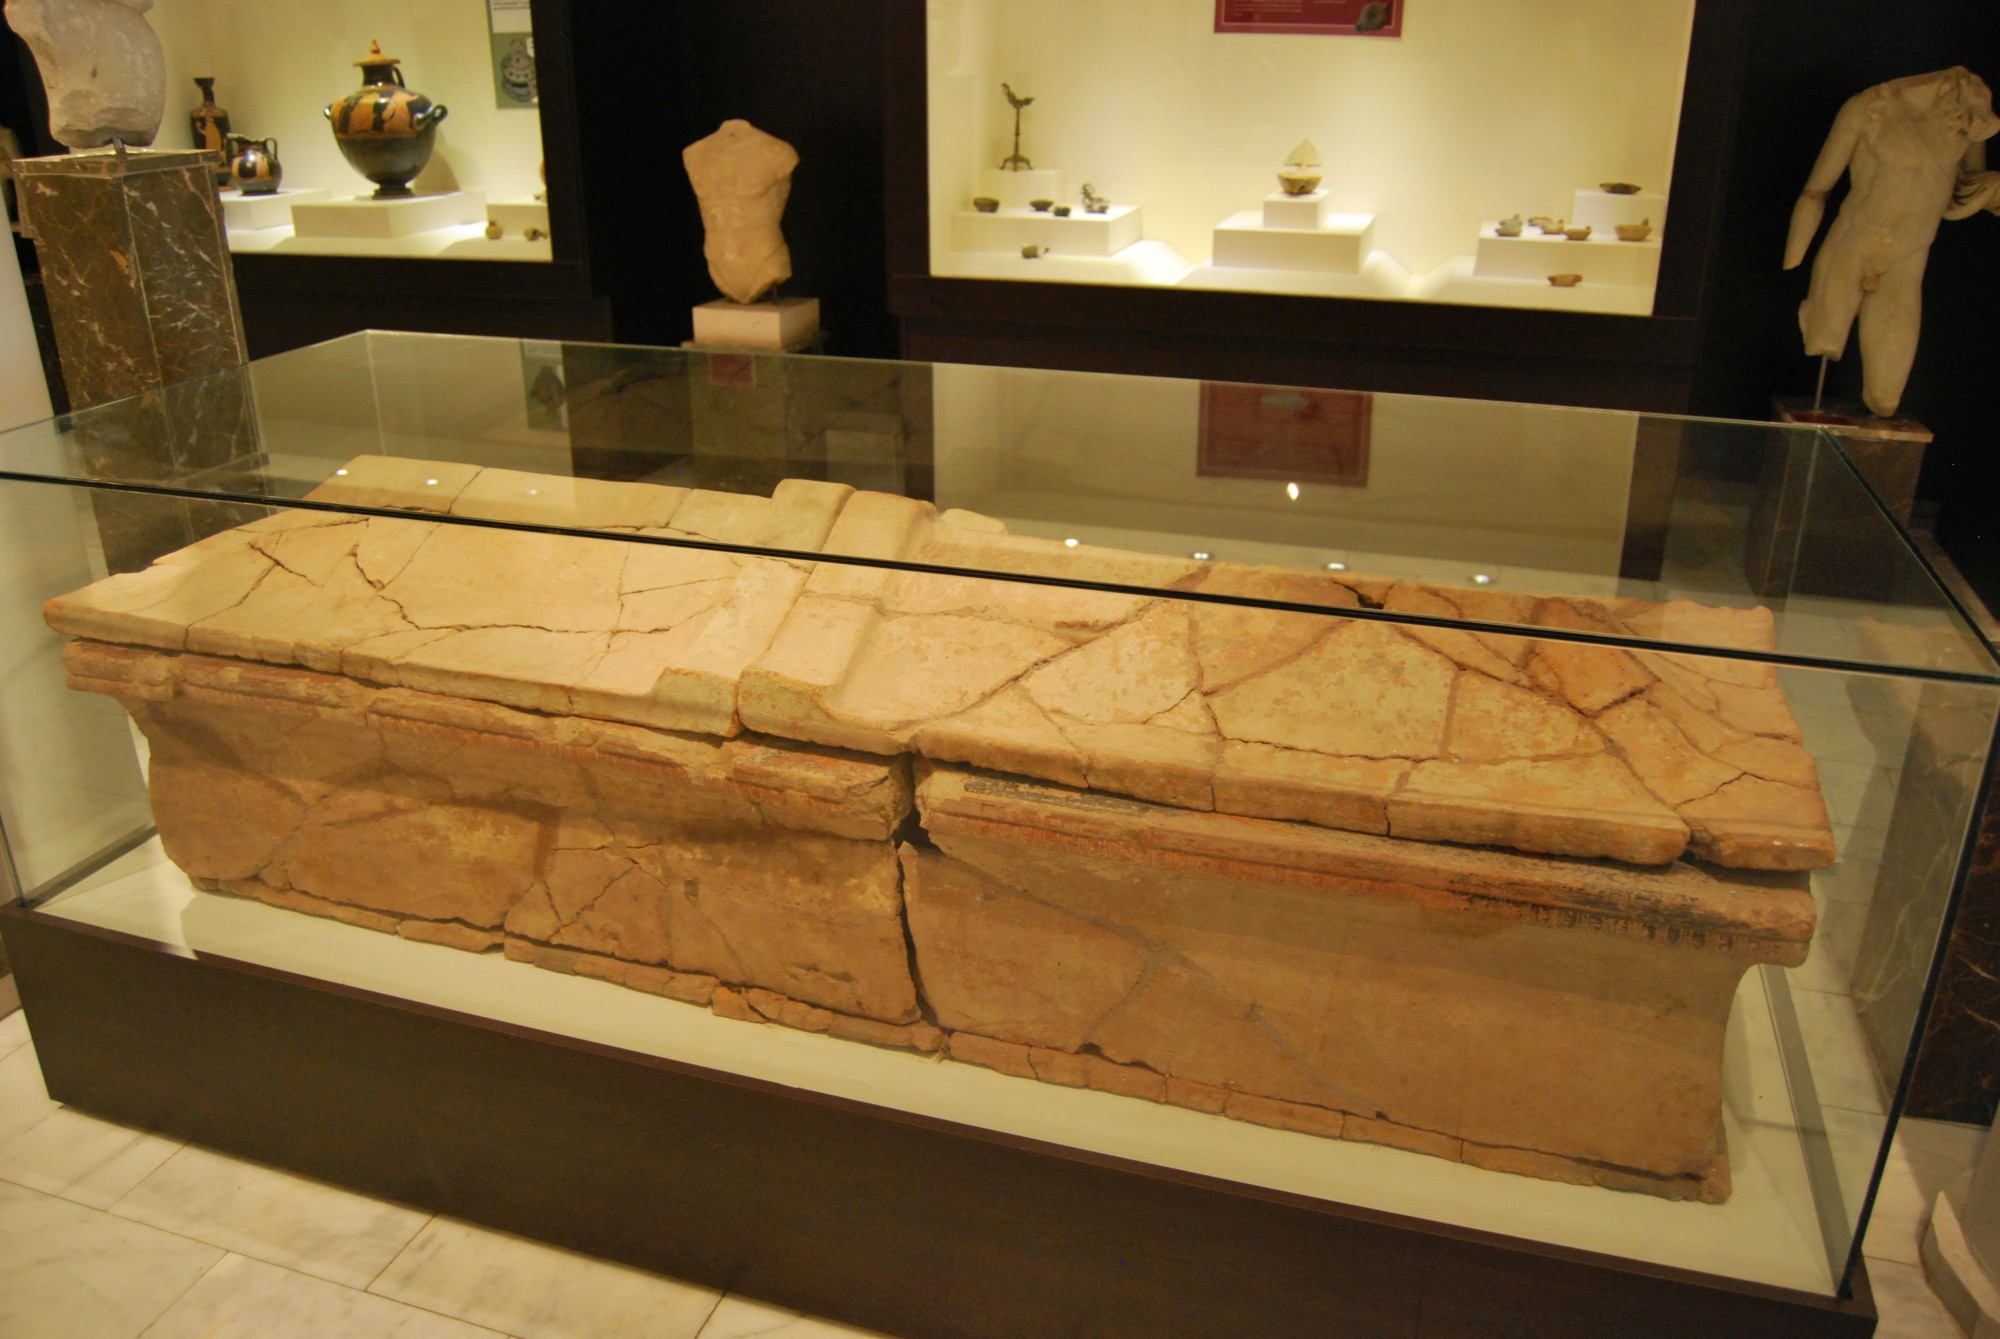 Clazomenae-style sarcophagus from Enez, Archaeological and Ethnographic Museum in Edirne